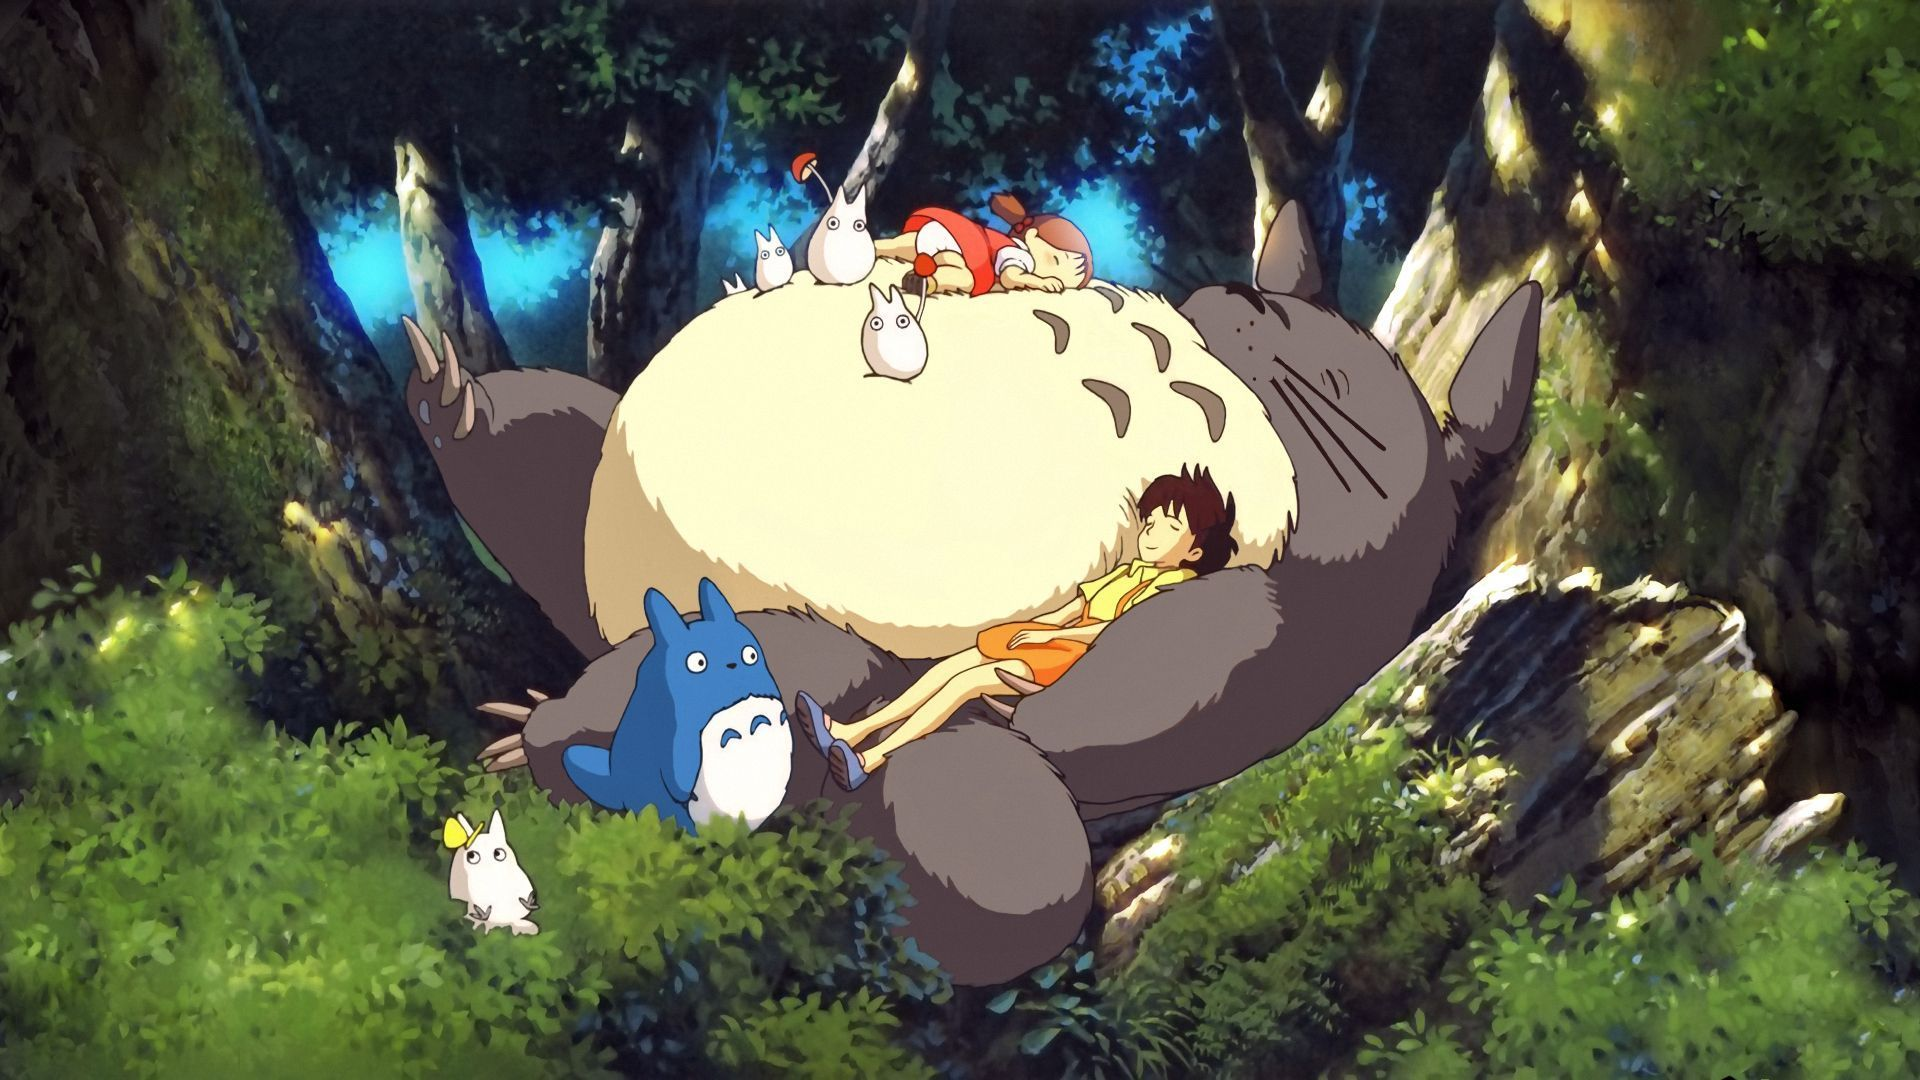 View Download Comment And Rate This 1920x1080 My Neighbor Totoro Wallpaper Wallpaper Abyss Trong 2020